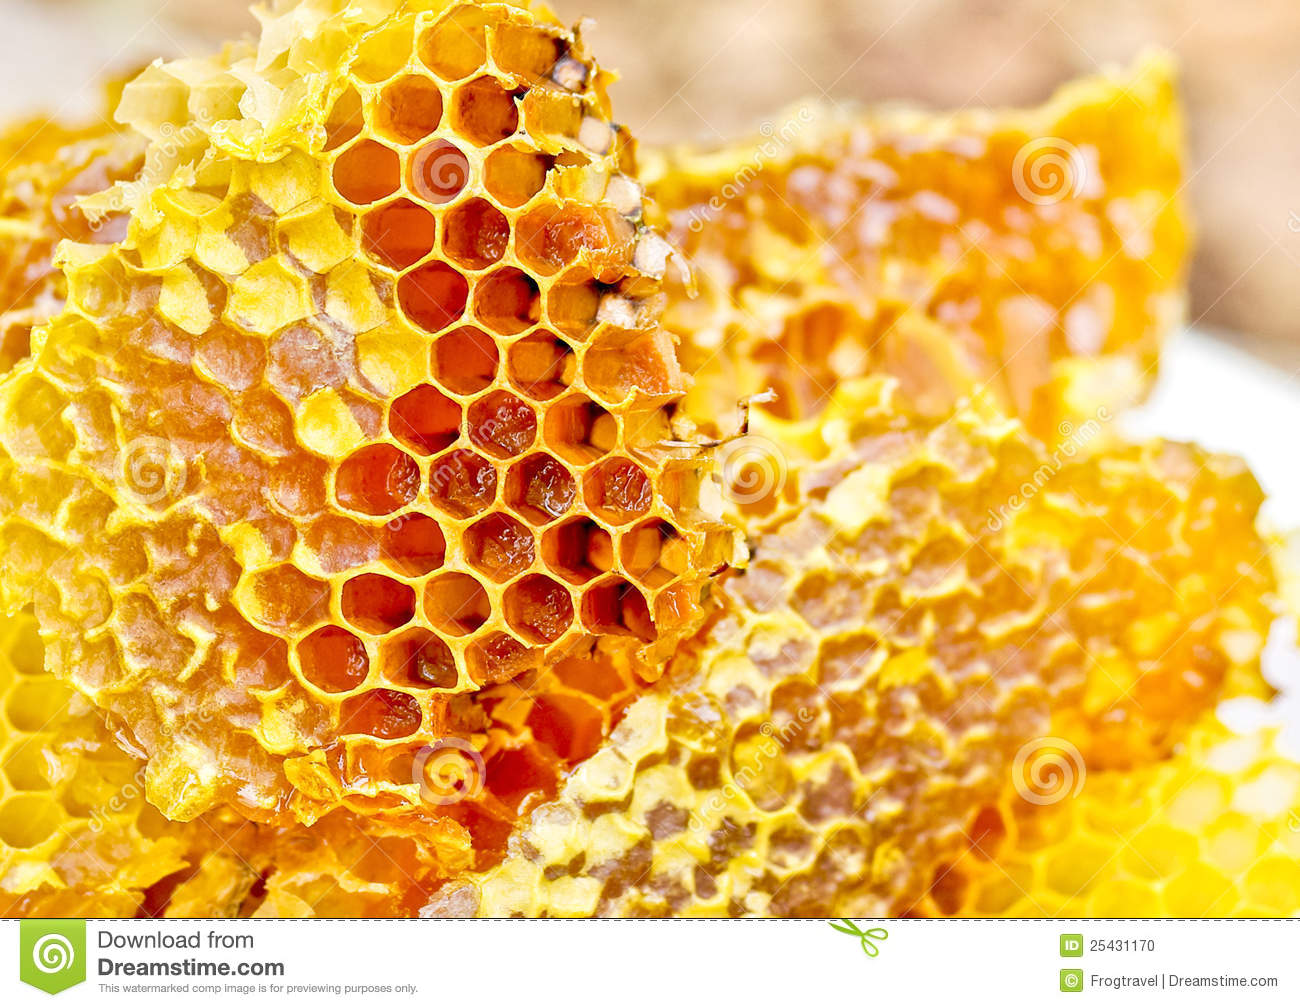 background - beekeeping produce. Bee honeycombs wax with honey. Honey ...